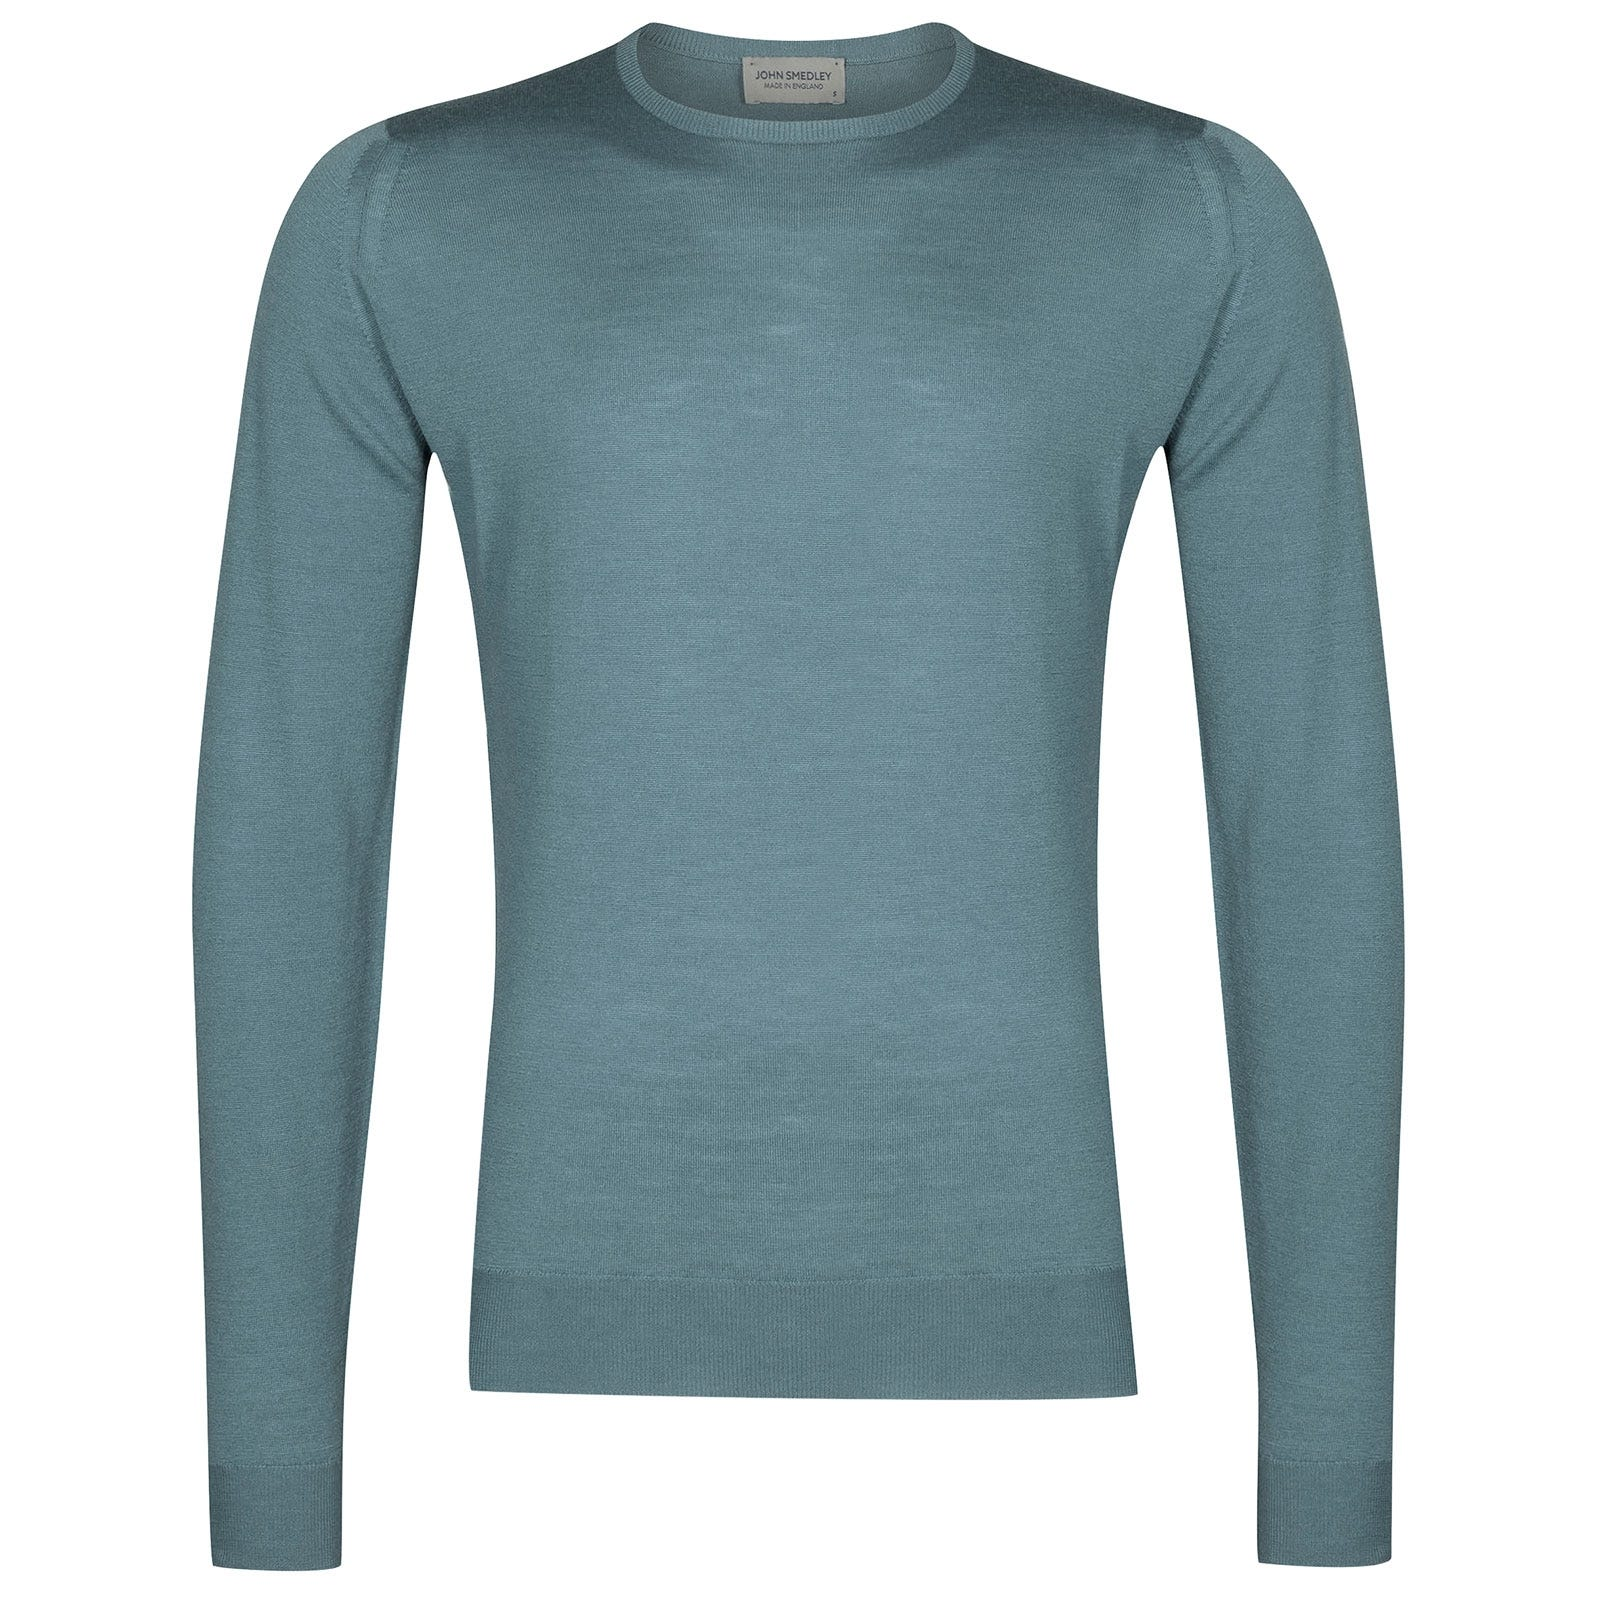 John Smedley lundy Merino Wool Pullover in Summit Blue-XL